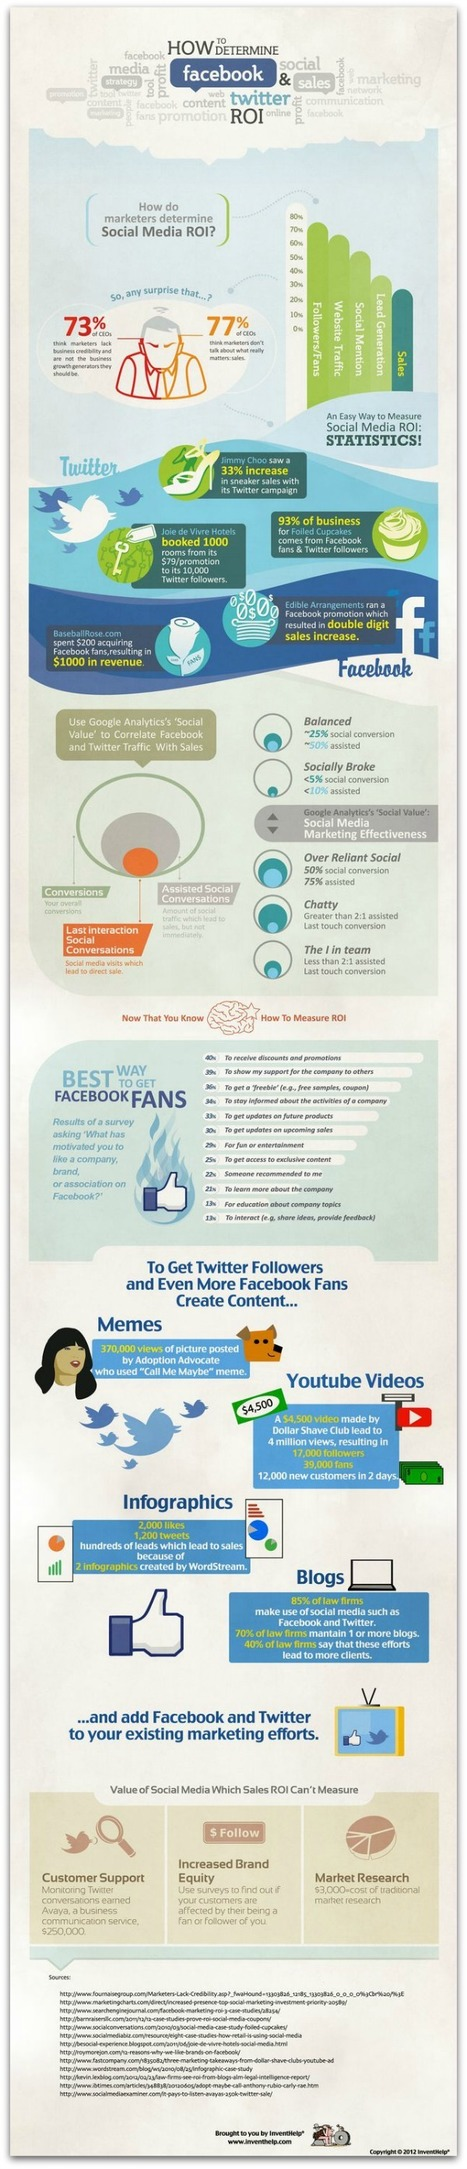 Infographic: How to measure Facebook and Twitter ROI | Social Media Tips & News | Scoop.it